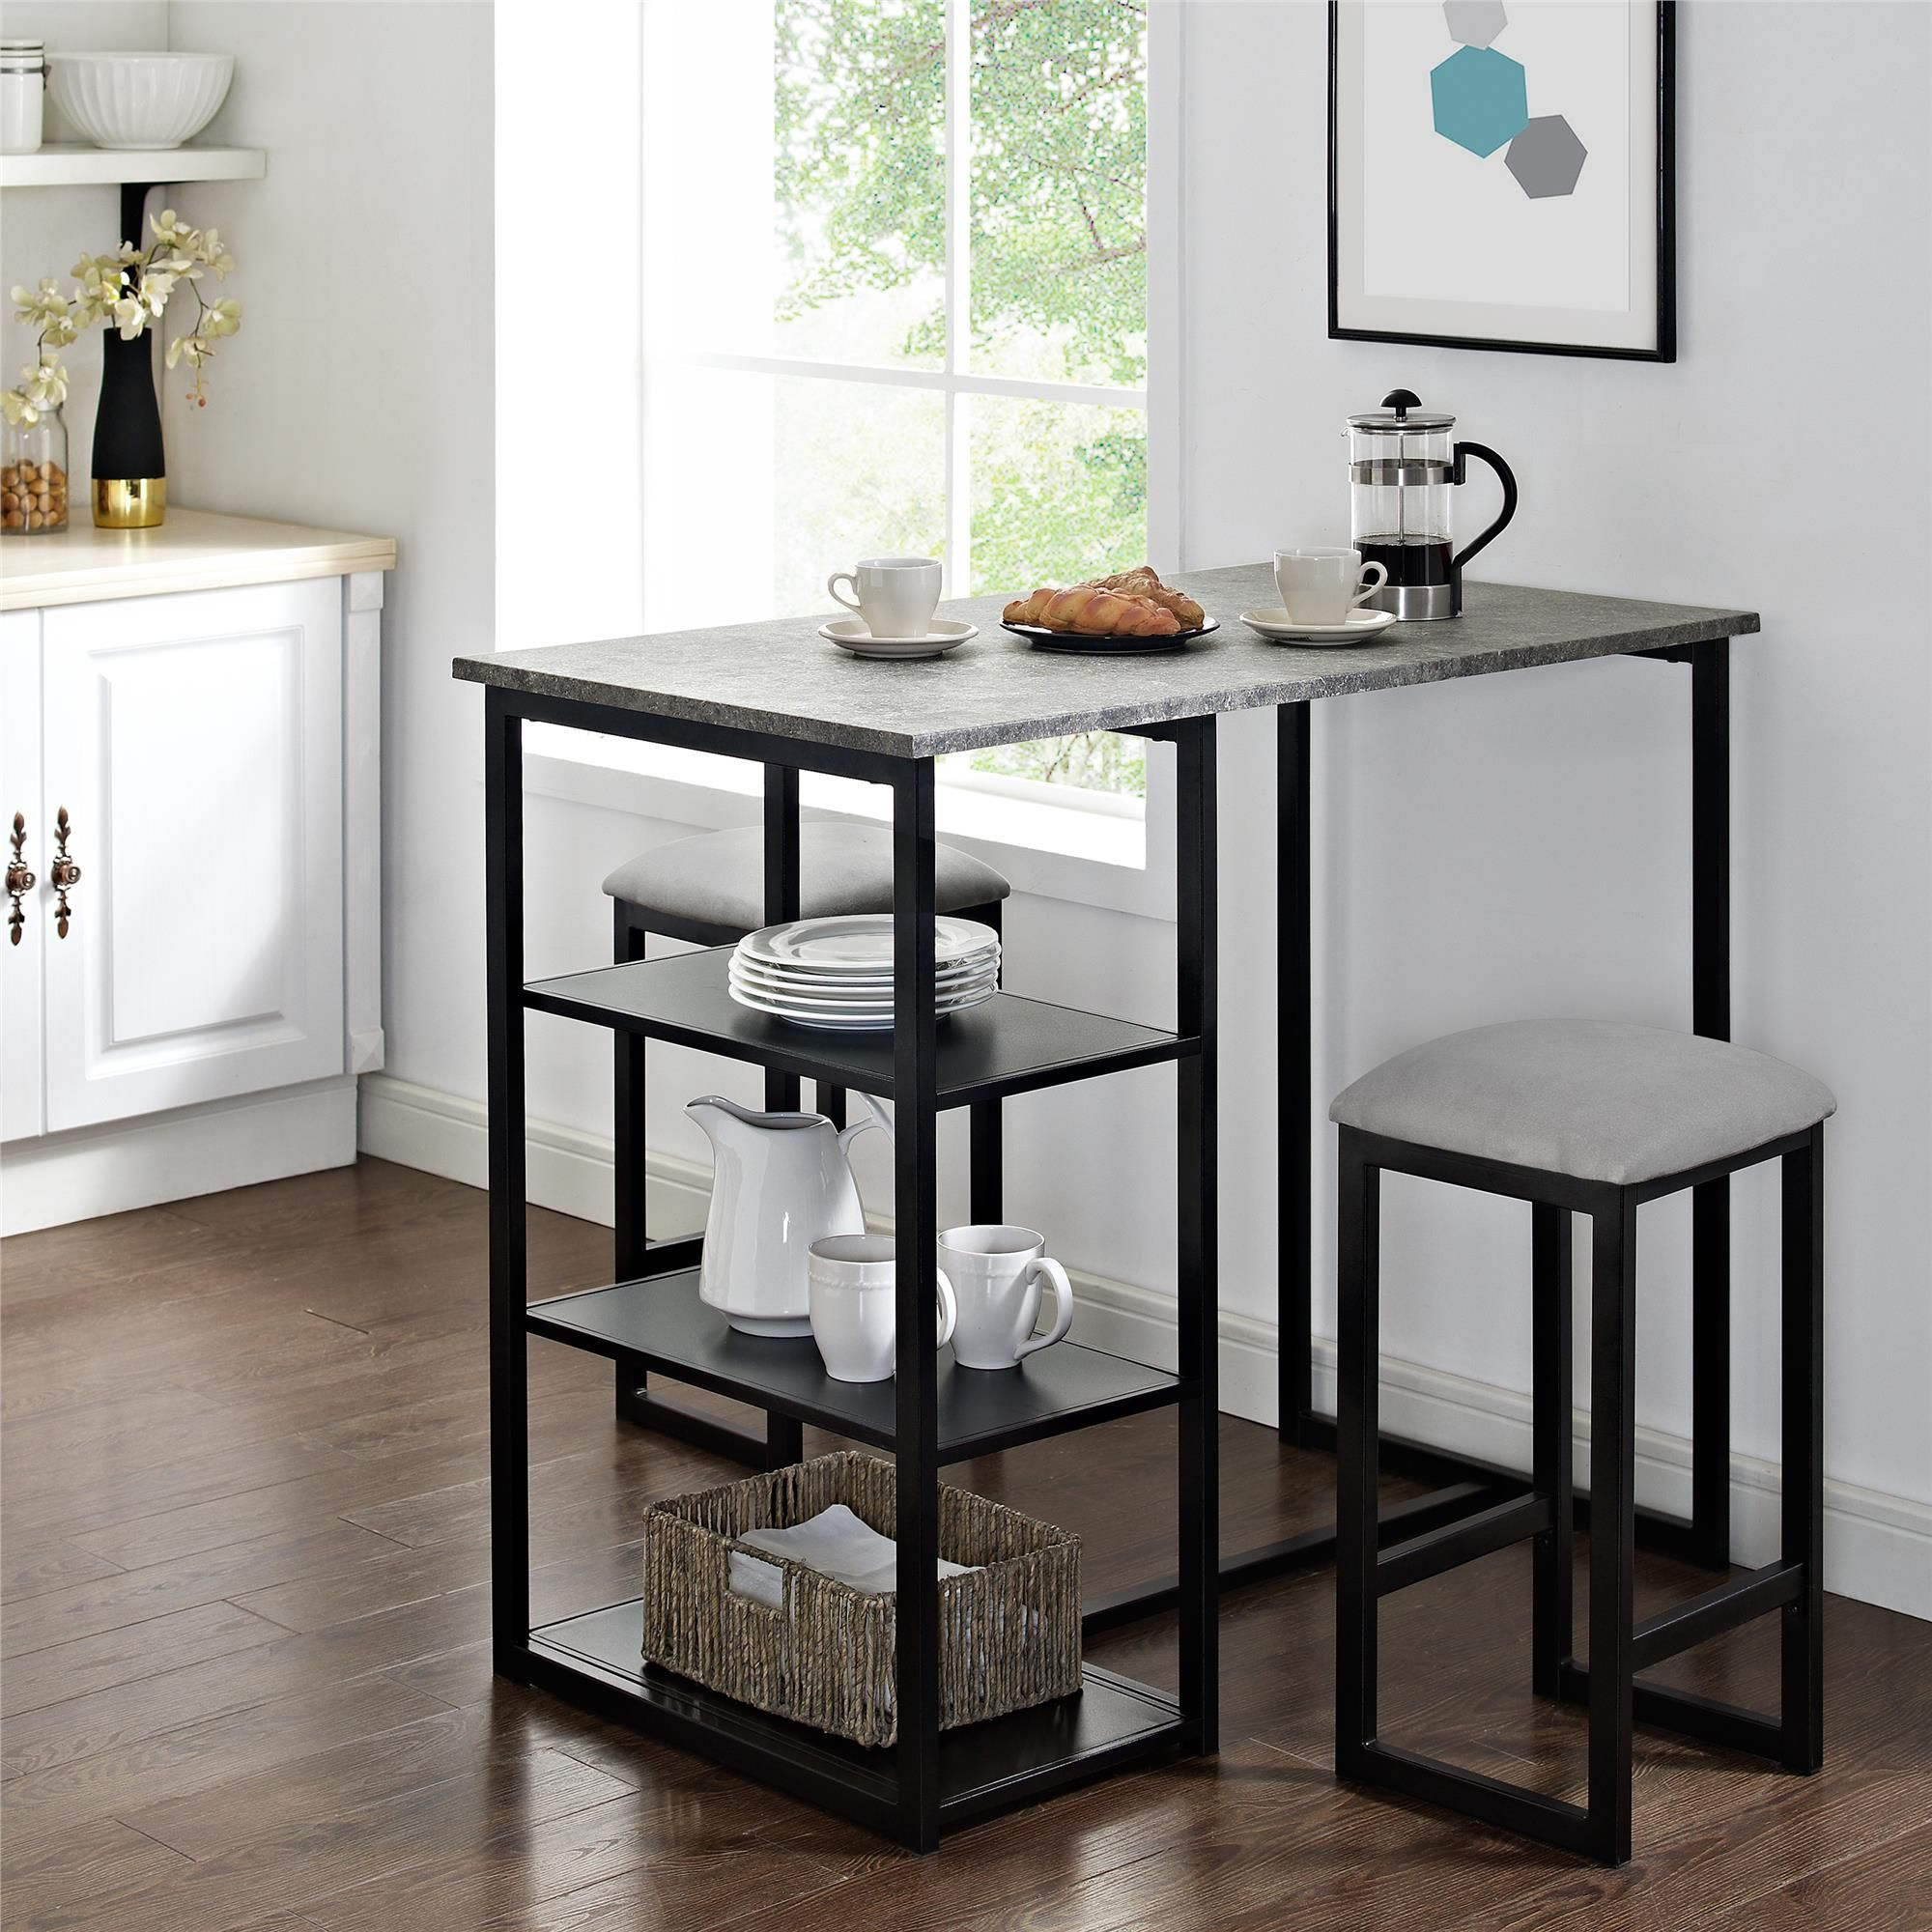 Urban Jungle Small Kitchen Tables High Dining Table Small Space Kitchen